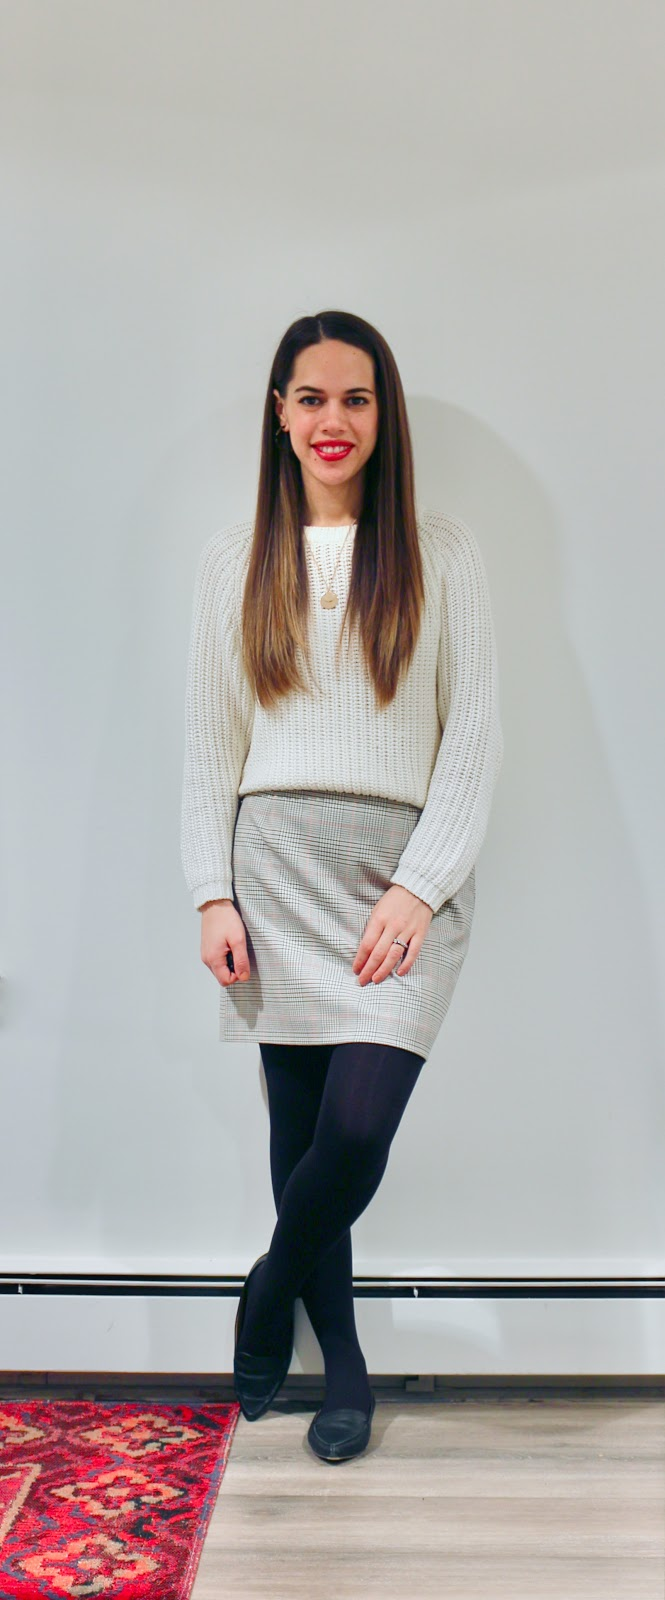 Jules in Flats - Plaid Mini Skirt with White Cropped Sweater (Business Casual Winter Workwear on a Budget)